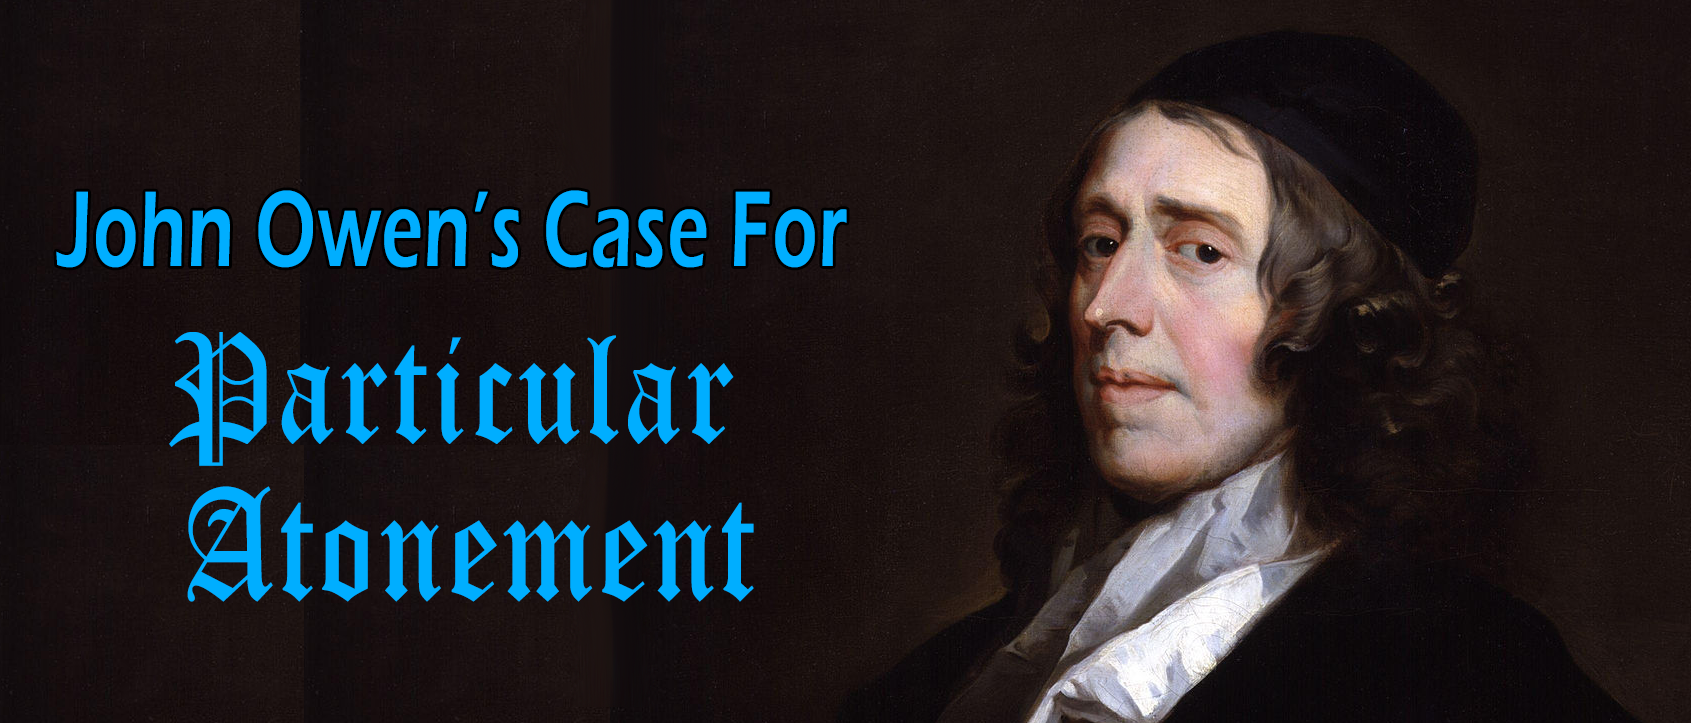 John Owen's Case For Particular Atonement